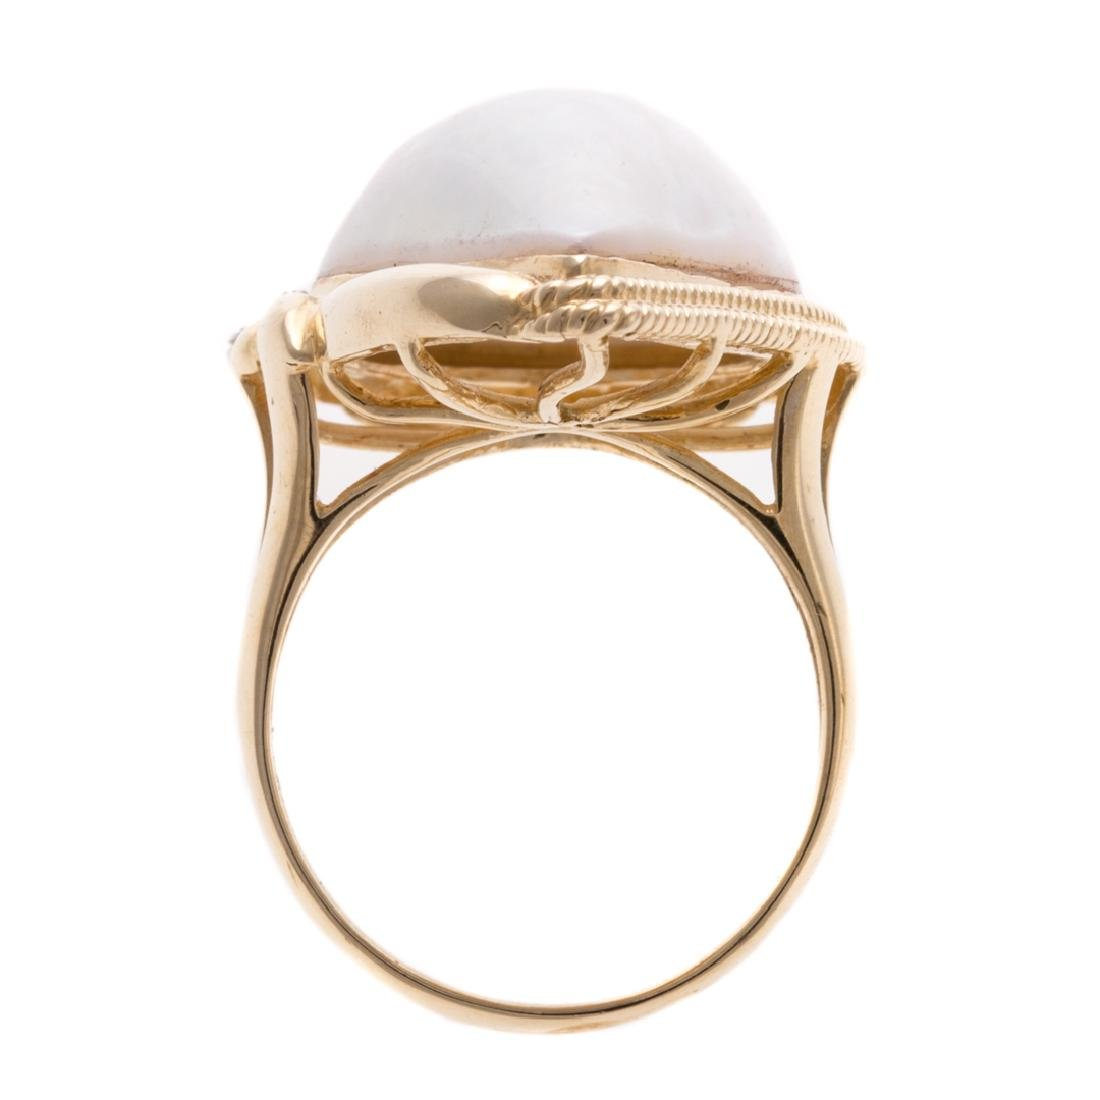 A Lady's 14K Mabe Pearl & Diamond Ring - 5